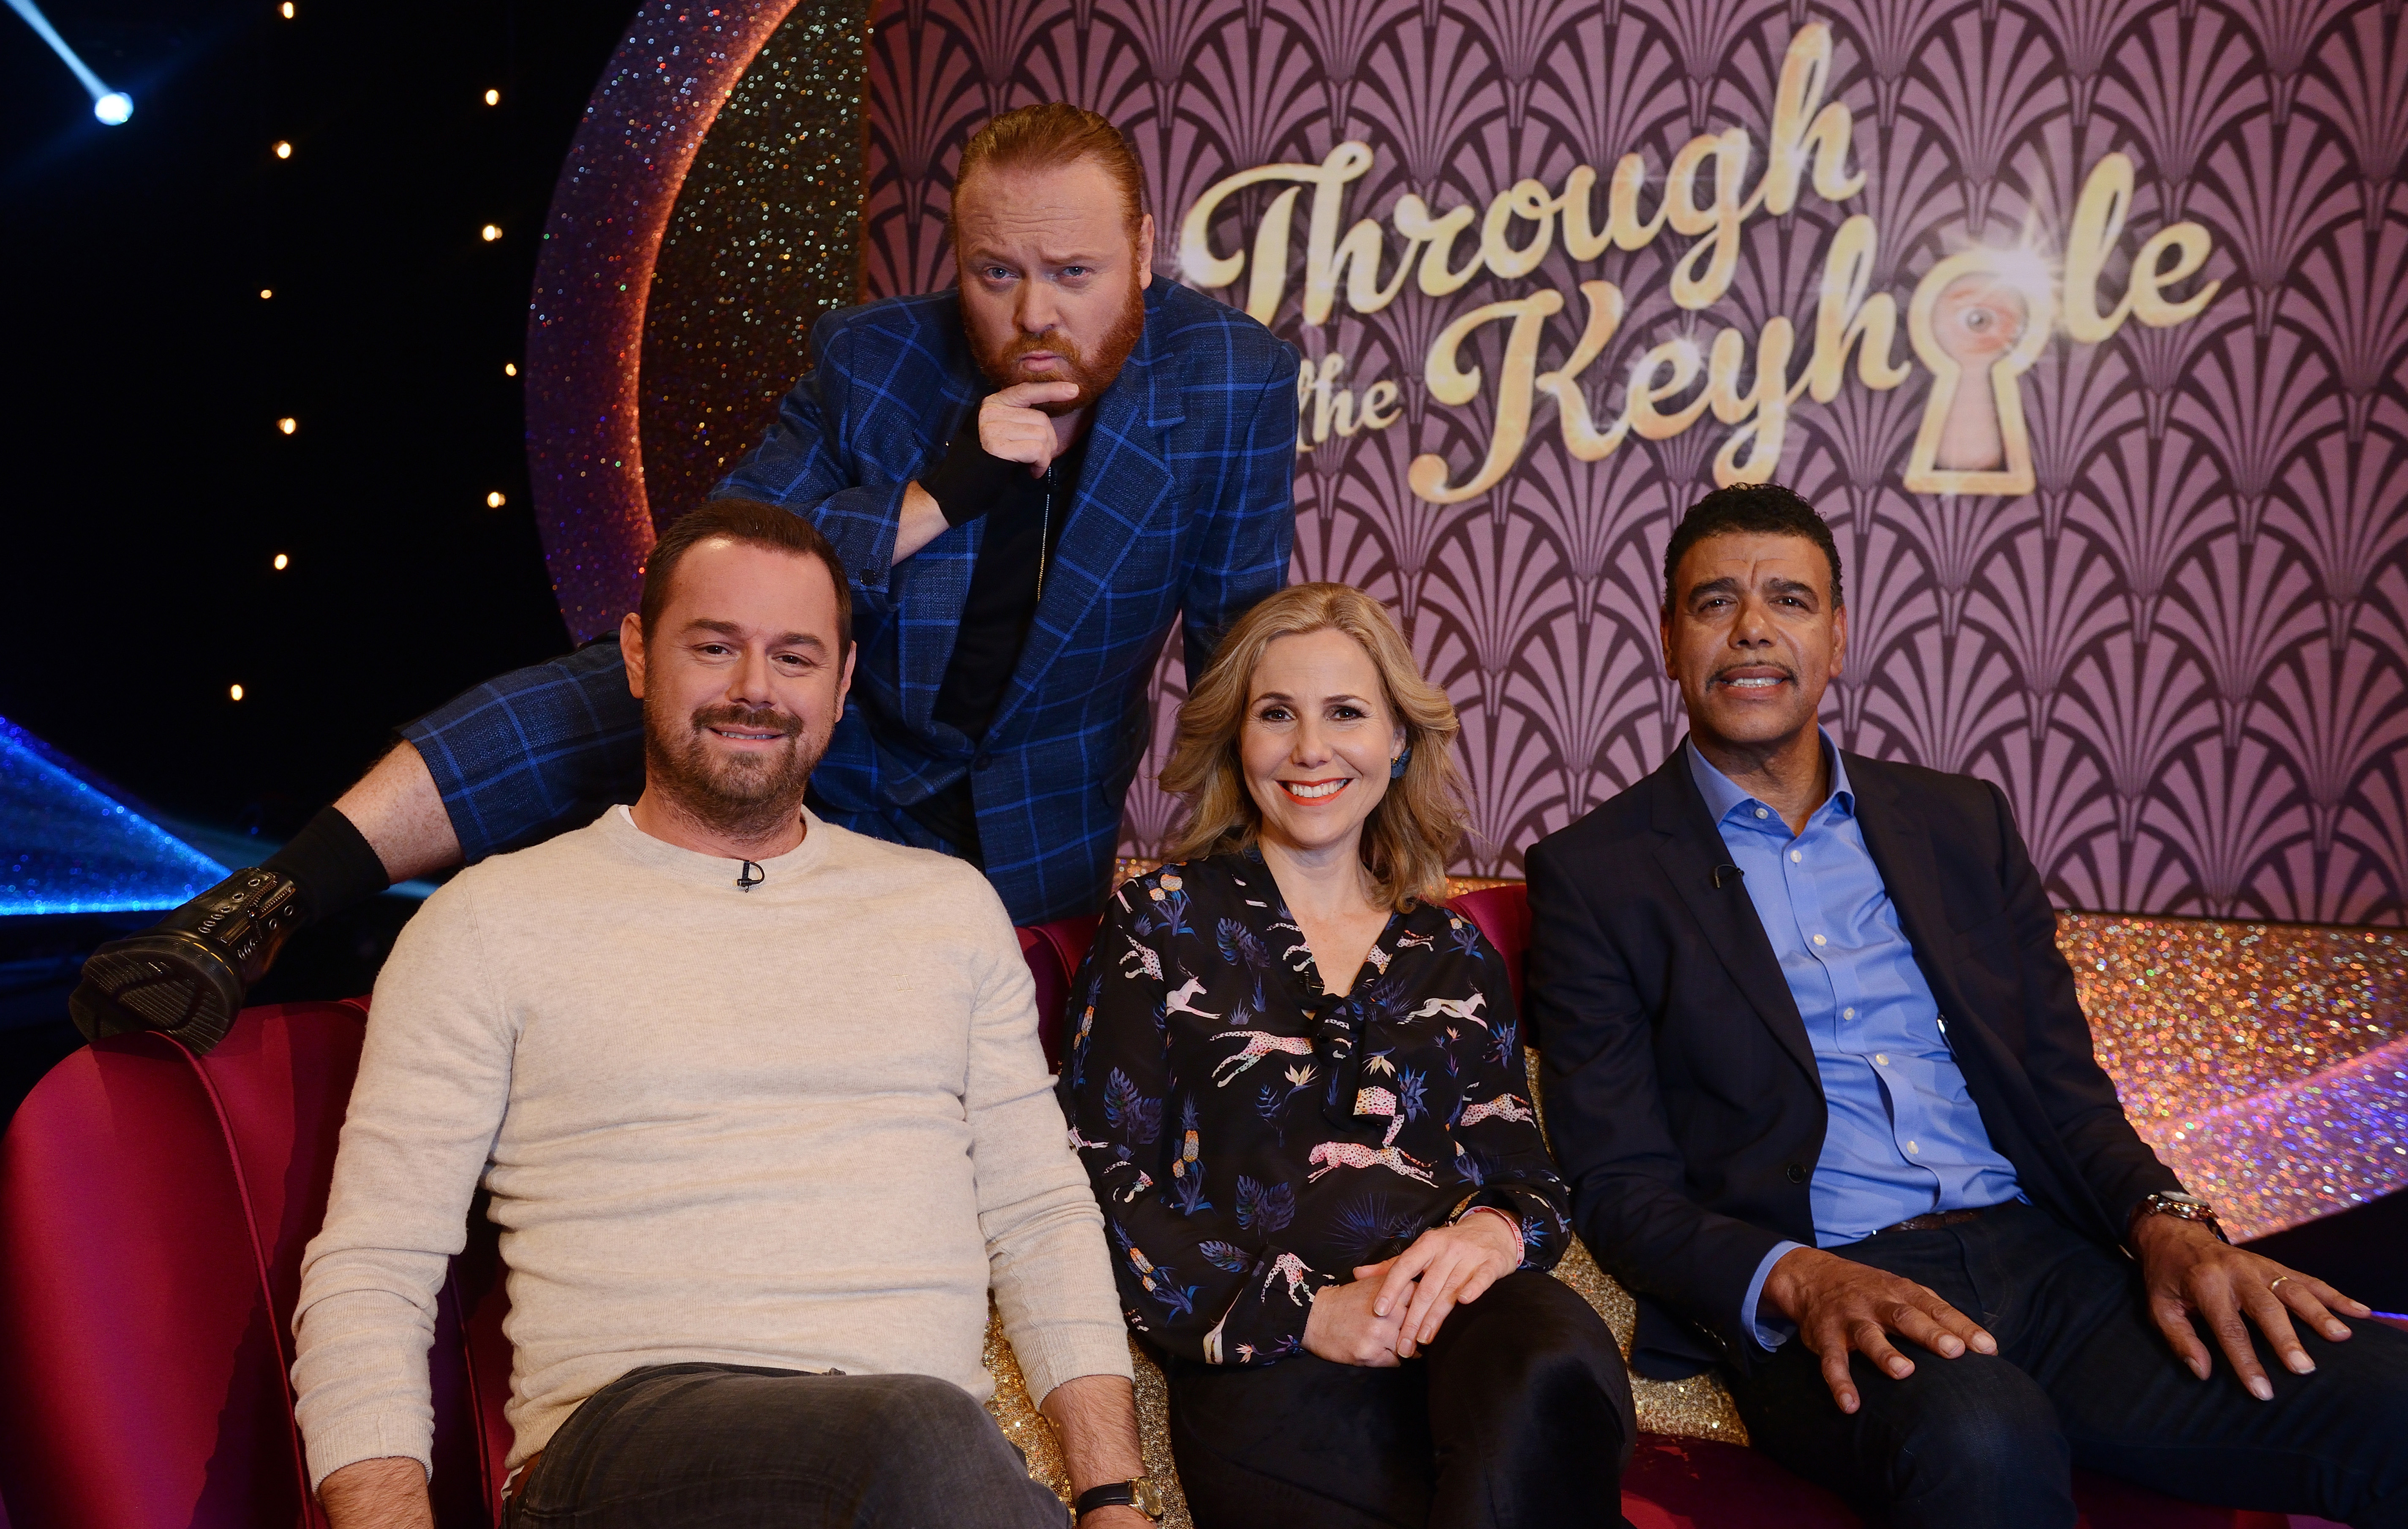 Through the Keyhole shows Danny Dyer, Keith Lemon, Sally Phillips and Chris Kamara